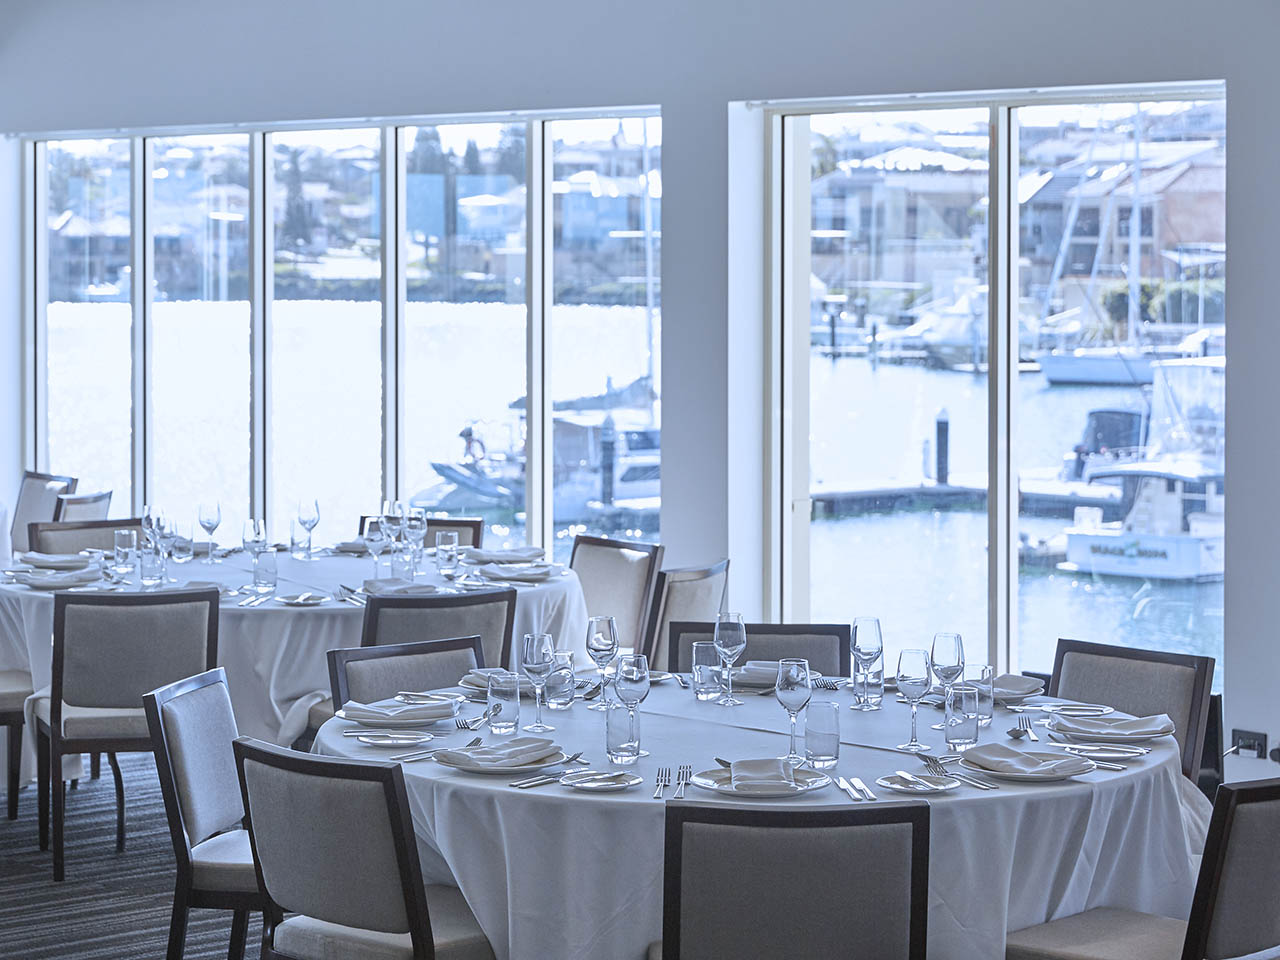 Waterside corporate event venue